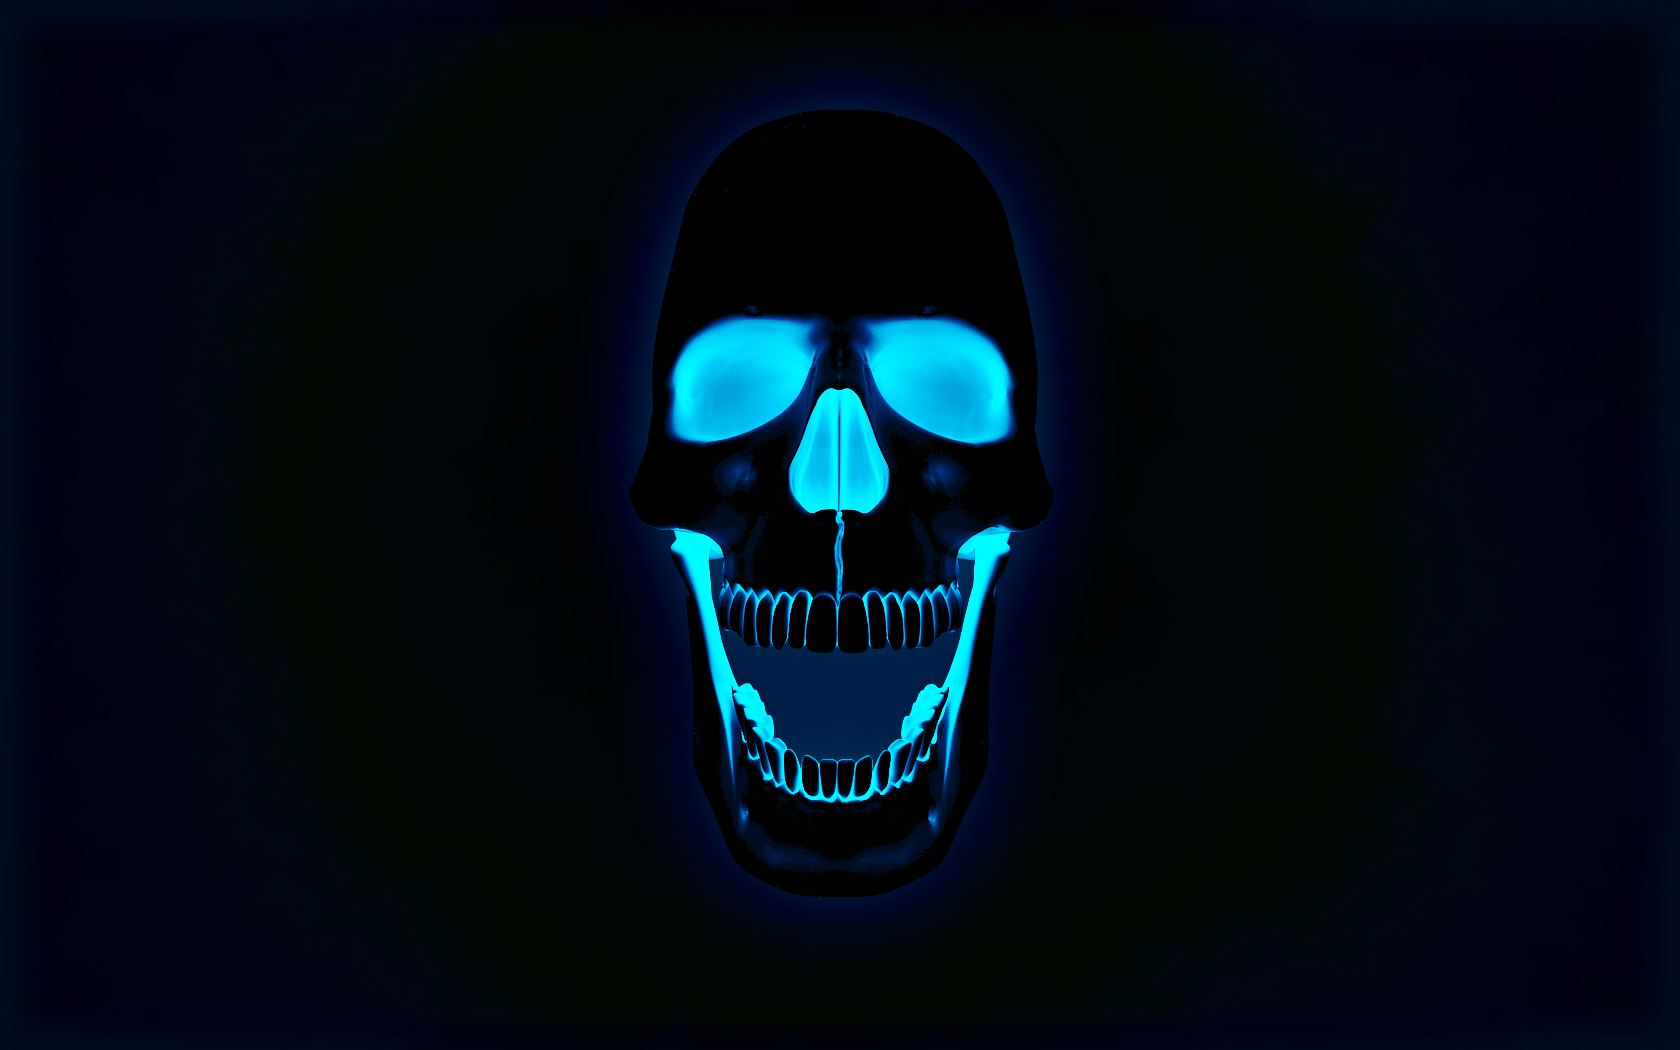 Skull Wallpaper Hd Resolution Is Cool Wallpapers